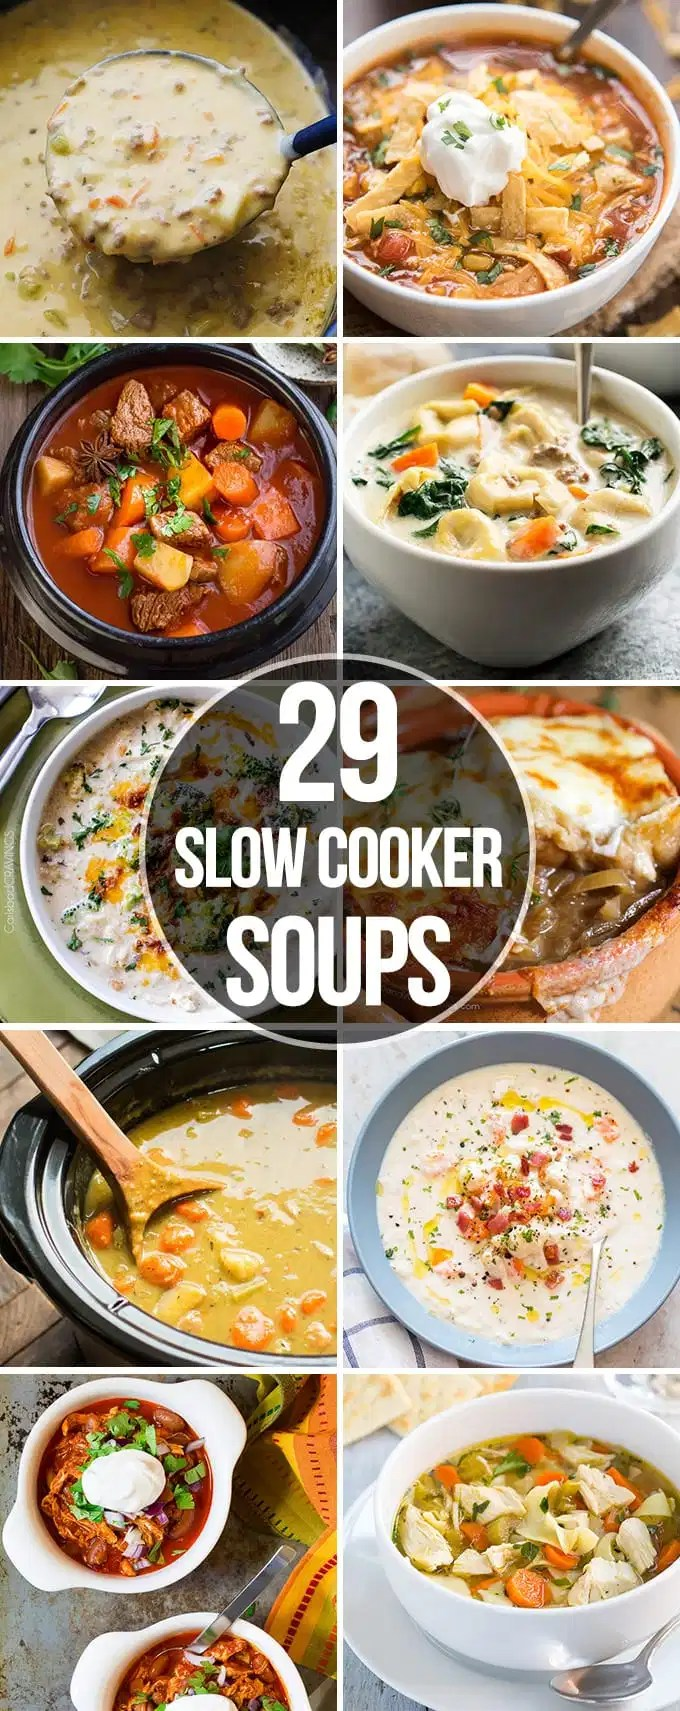 Twenty Nine Slow Cooker Soups that are perfect for an easy comforting meal. They are ready with out a lot of prep work and are so great for a cold day!